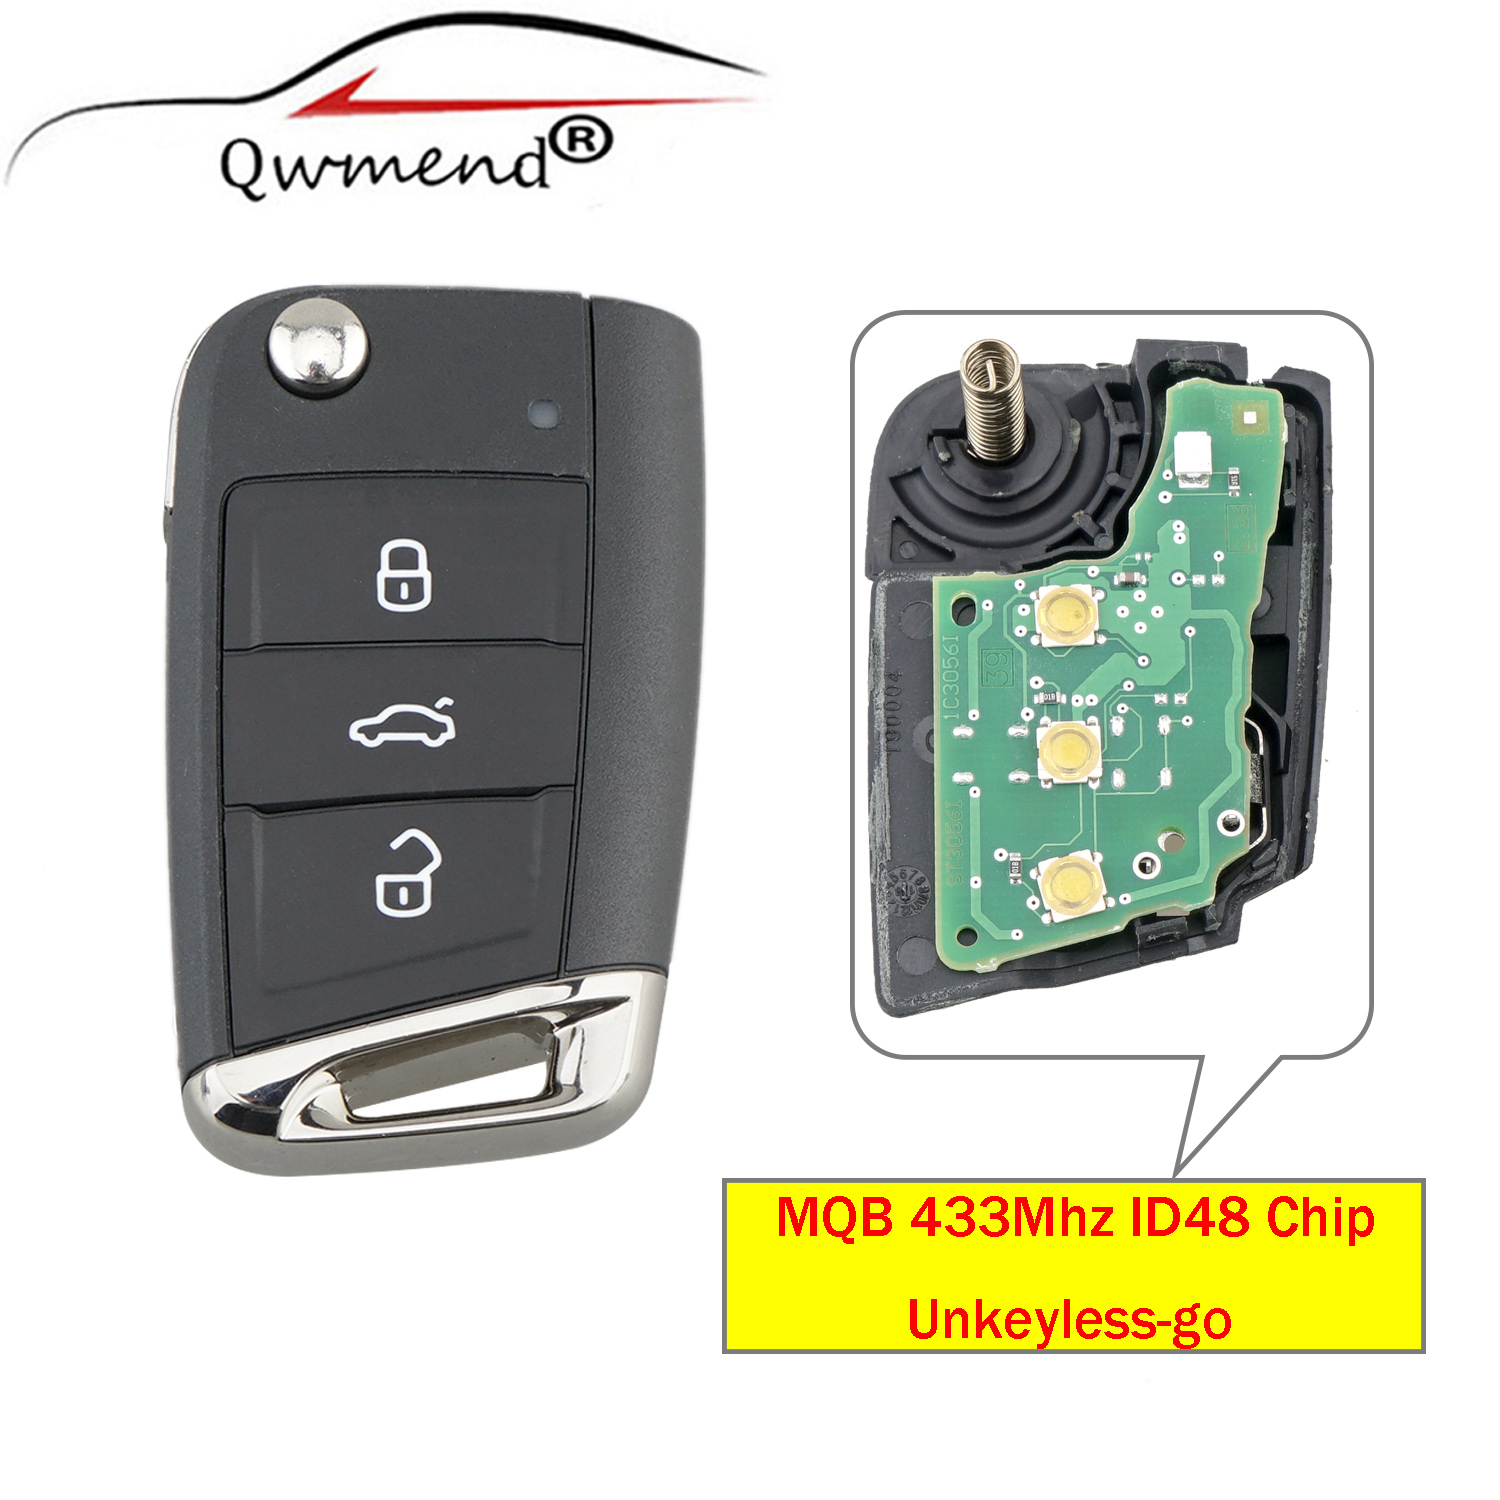 QWMEND Half Smart Option <font><b>Remote</b></font> <font><b>Key</b></font> Fob 434MHz with ID48 Chip for Volkswagen MQB For <font><b>Golf</b></font> VII <font><b>Golf</b></font> <font><b>7</b></font> MK7 Skoda Octavia A7 2017 image